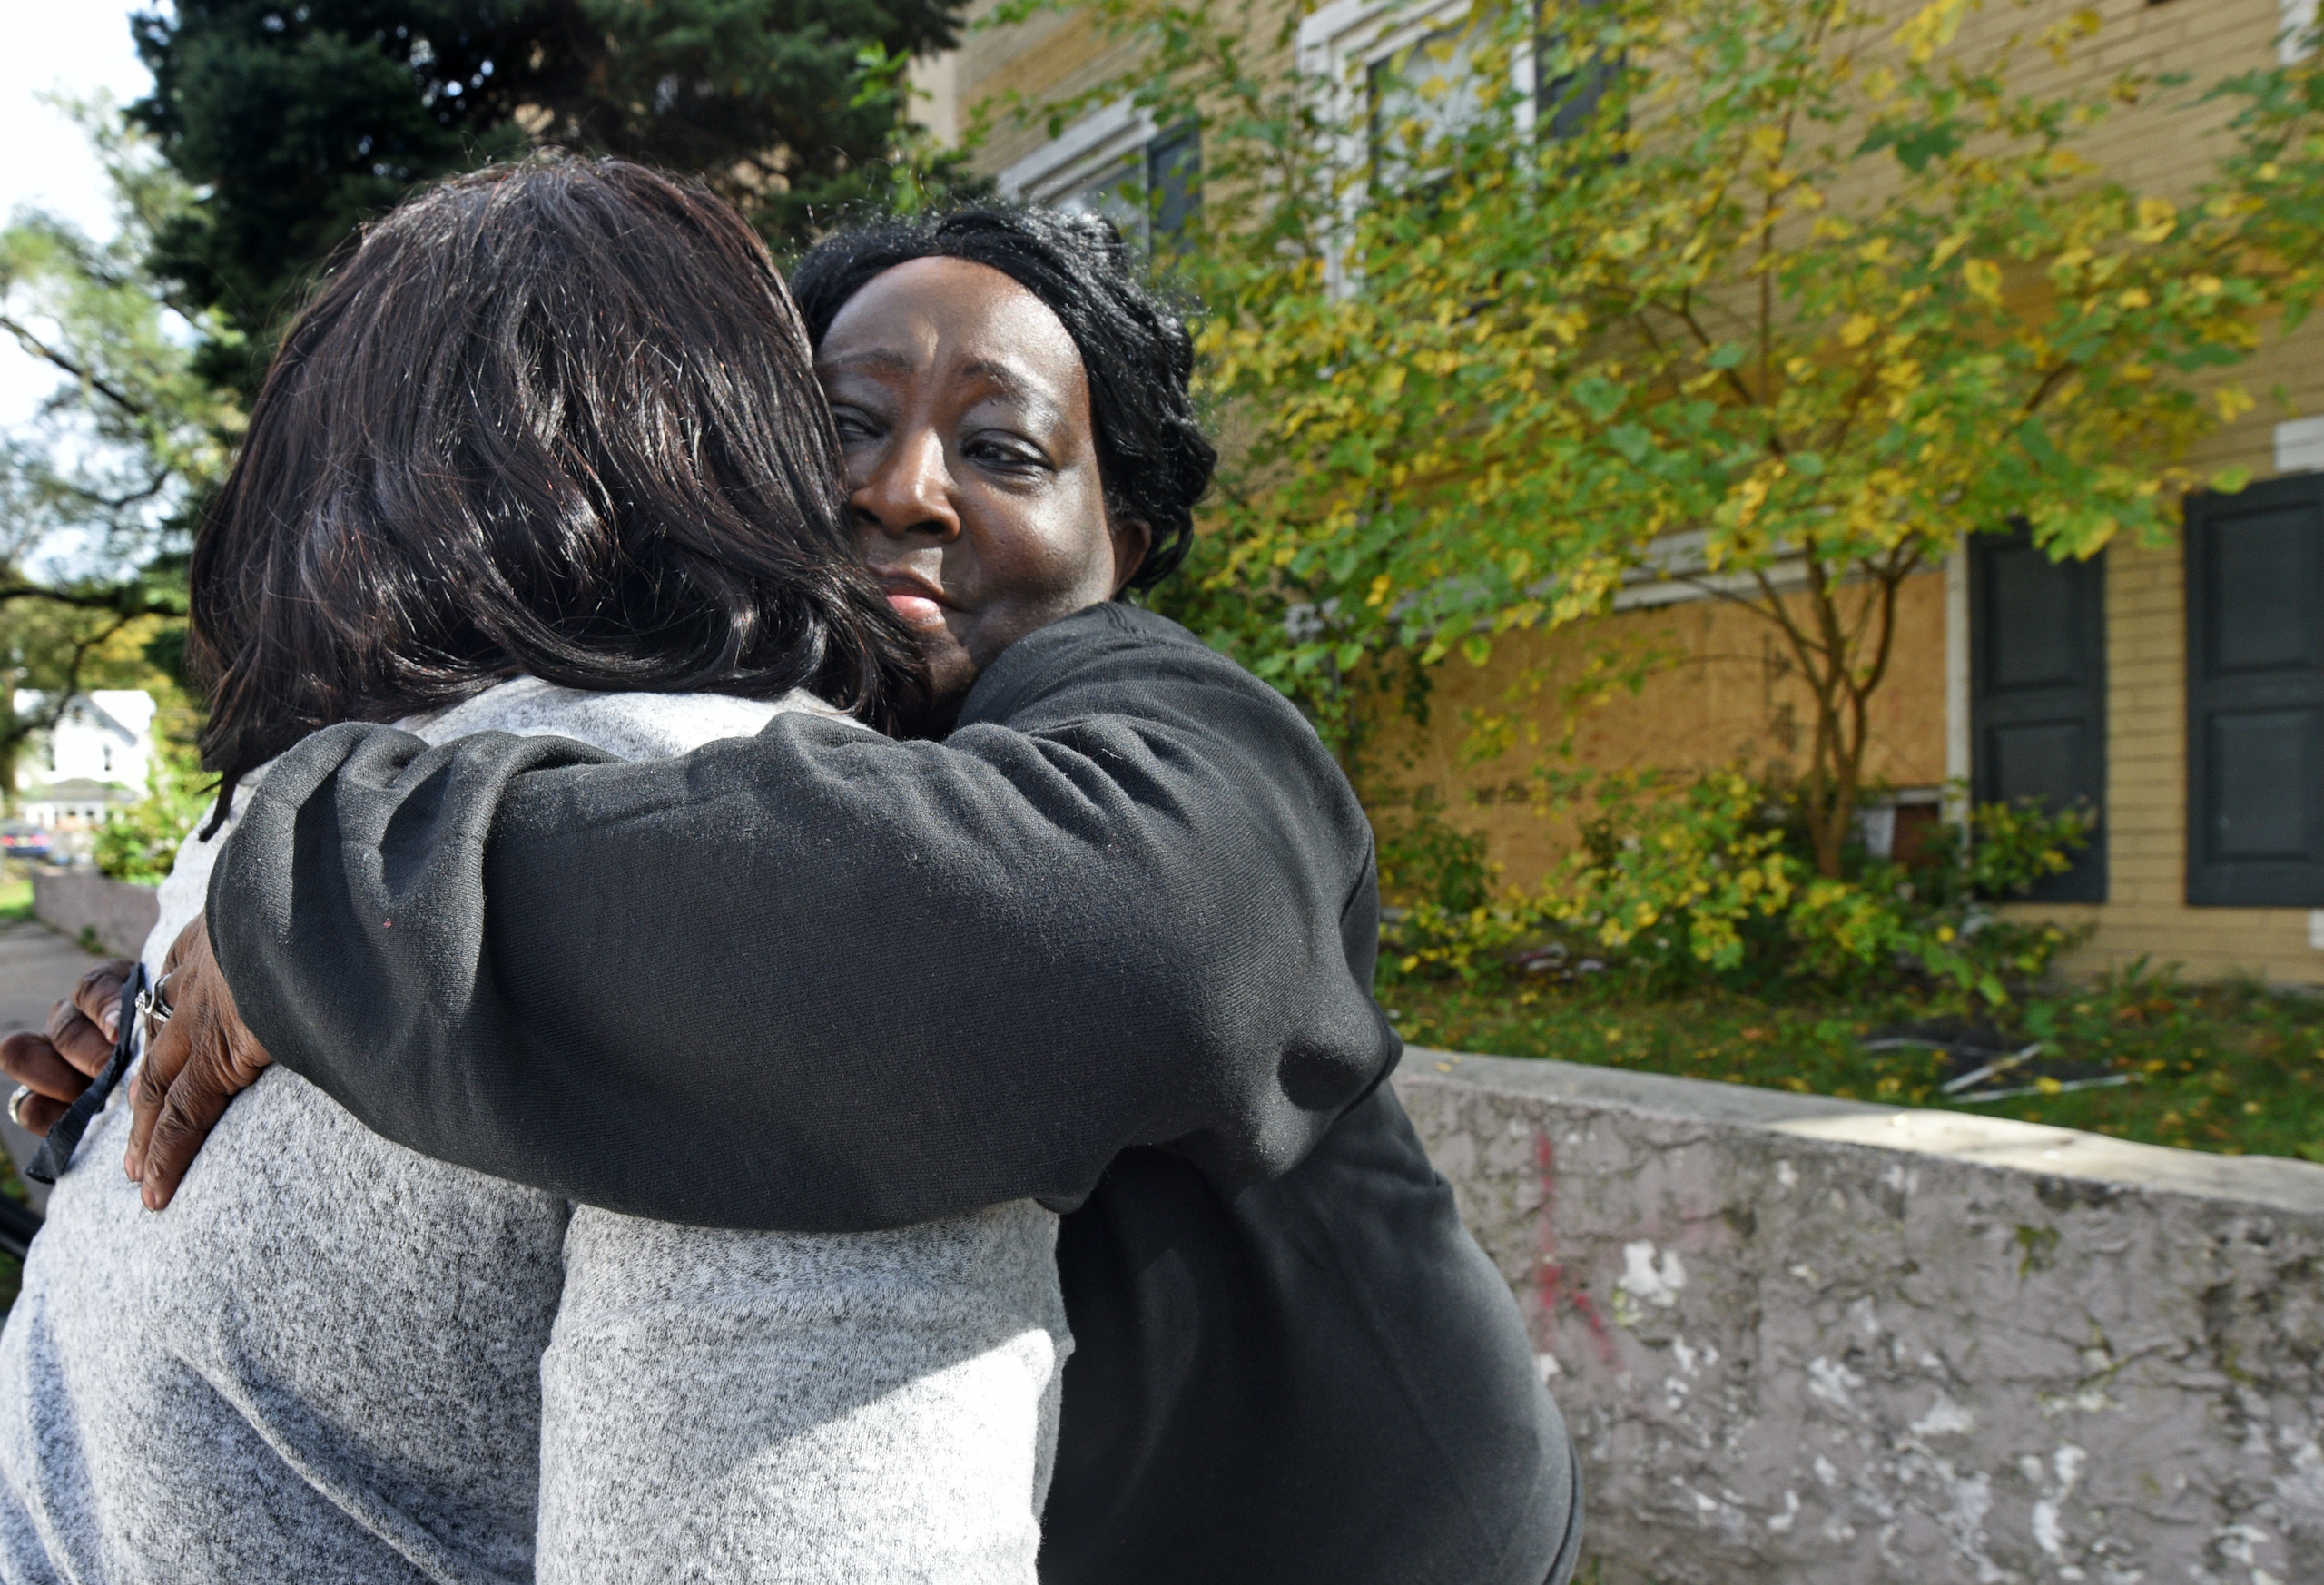 At the Cra-West Apartments in Camden on Oct. 27, tenant Pamela Mumford gets a hug after removing belongings from the apartment she shared with her daughter before the fire on Sunday